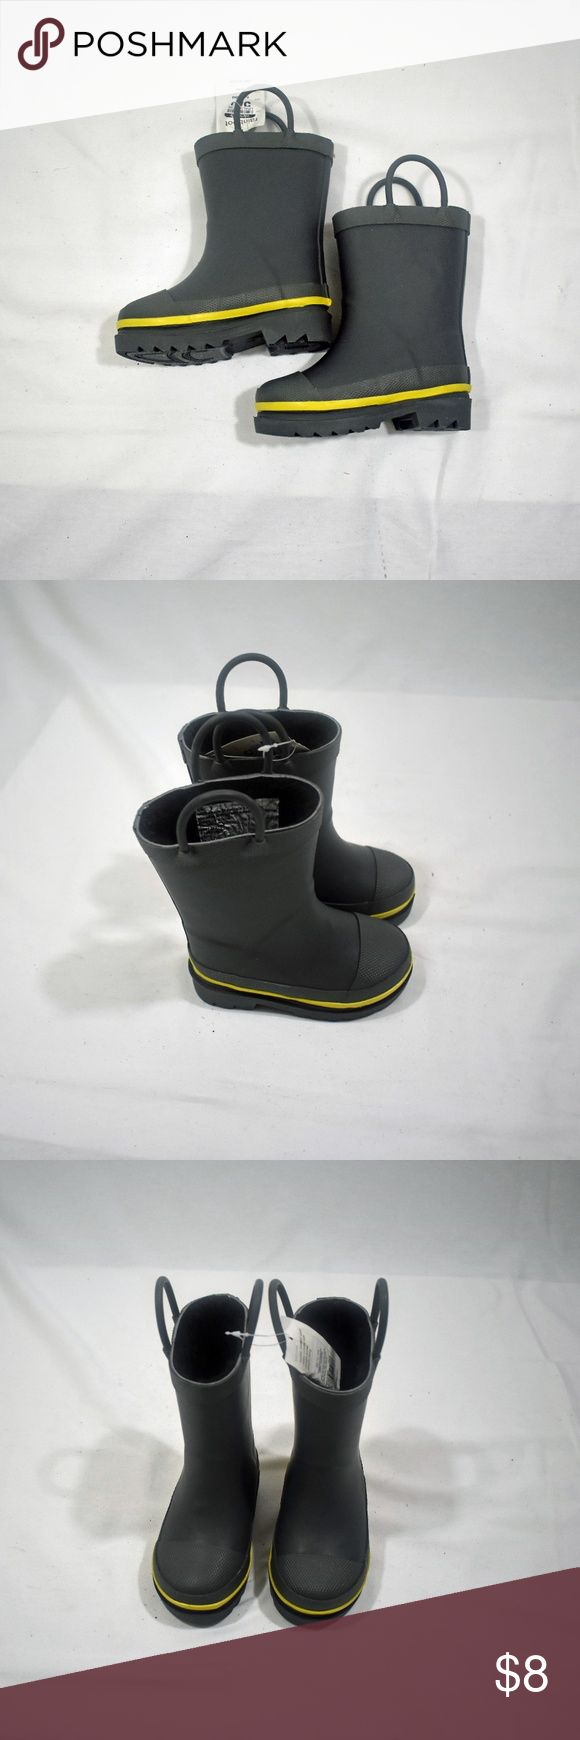 Toddler Boys Sz 5/6 Splash Rain Boots - NWT Charcoal boots with a yellow pop-of-color stripe. Great for puddle splashing! Two pull handles to help kids pull boots on and off. Waterproof with a faux fur lining and an easy to clean shell. Western Chief has been making trusted family footwear since 1891.  All products are handmade with the intent of keeping the wearer dry and comfortable in unpredictable weather.  New with tags! Western Chief Shoes Rain & Snow Boots